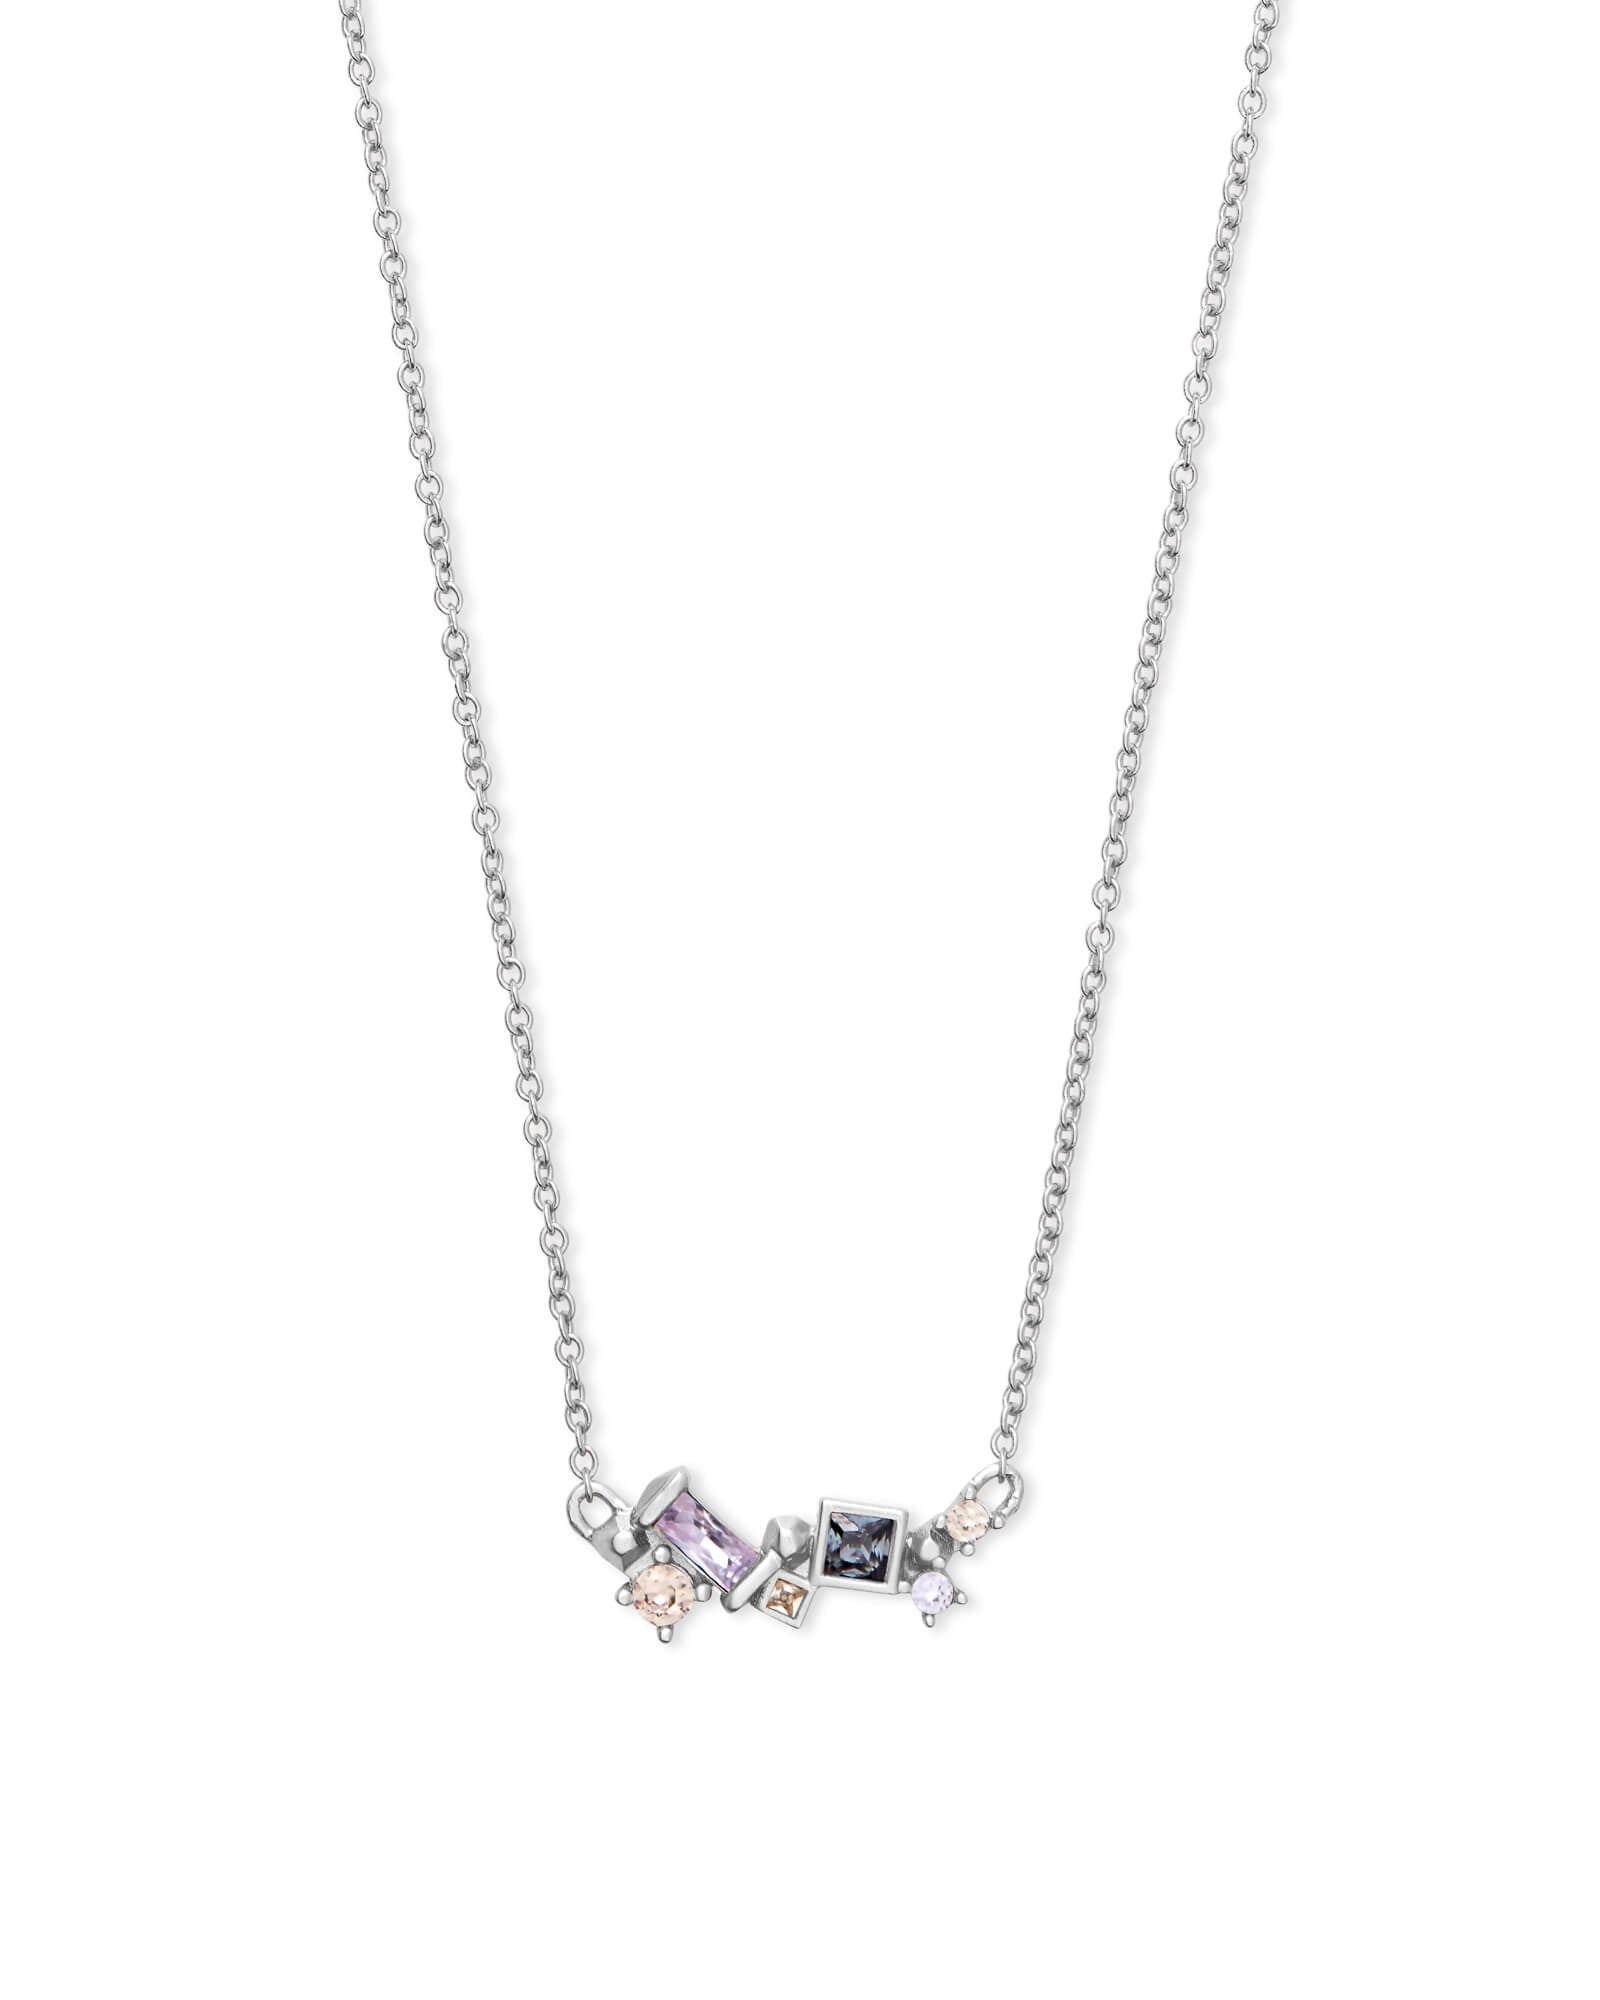 Gunner Silver Pendant Necklace in Lilac Mix